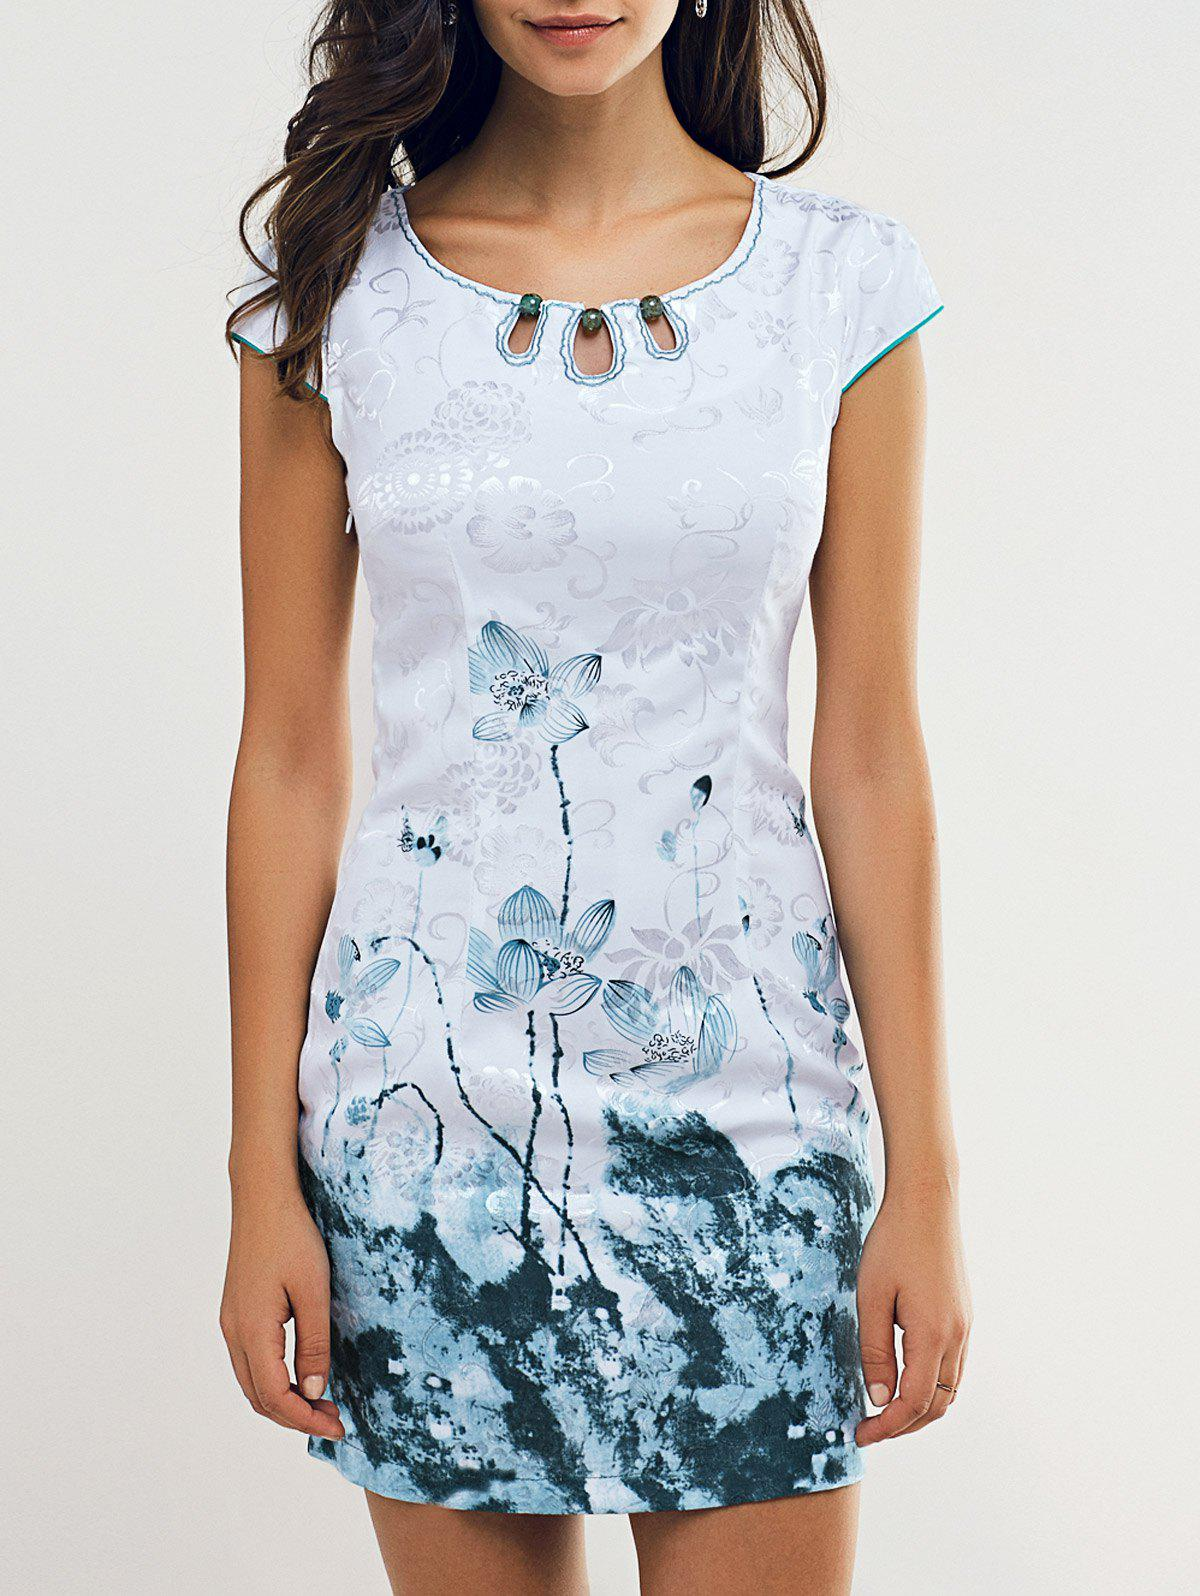 Vintage Bead Embellished Lotus Print Women's Cheongsam - LIGHT BLUE XL